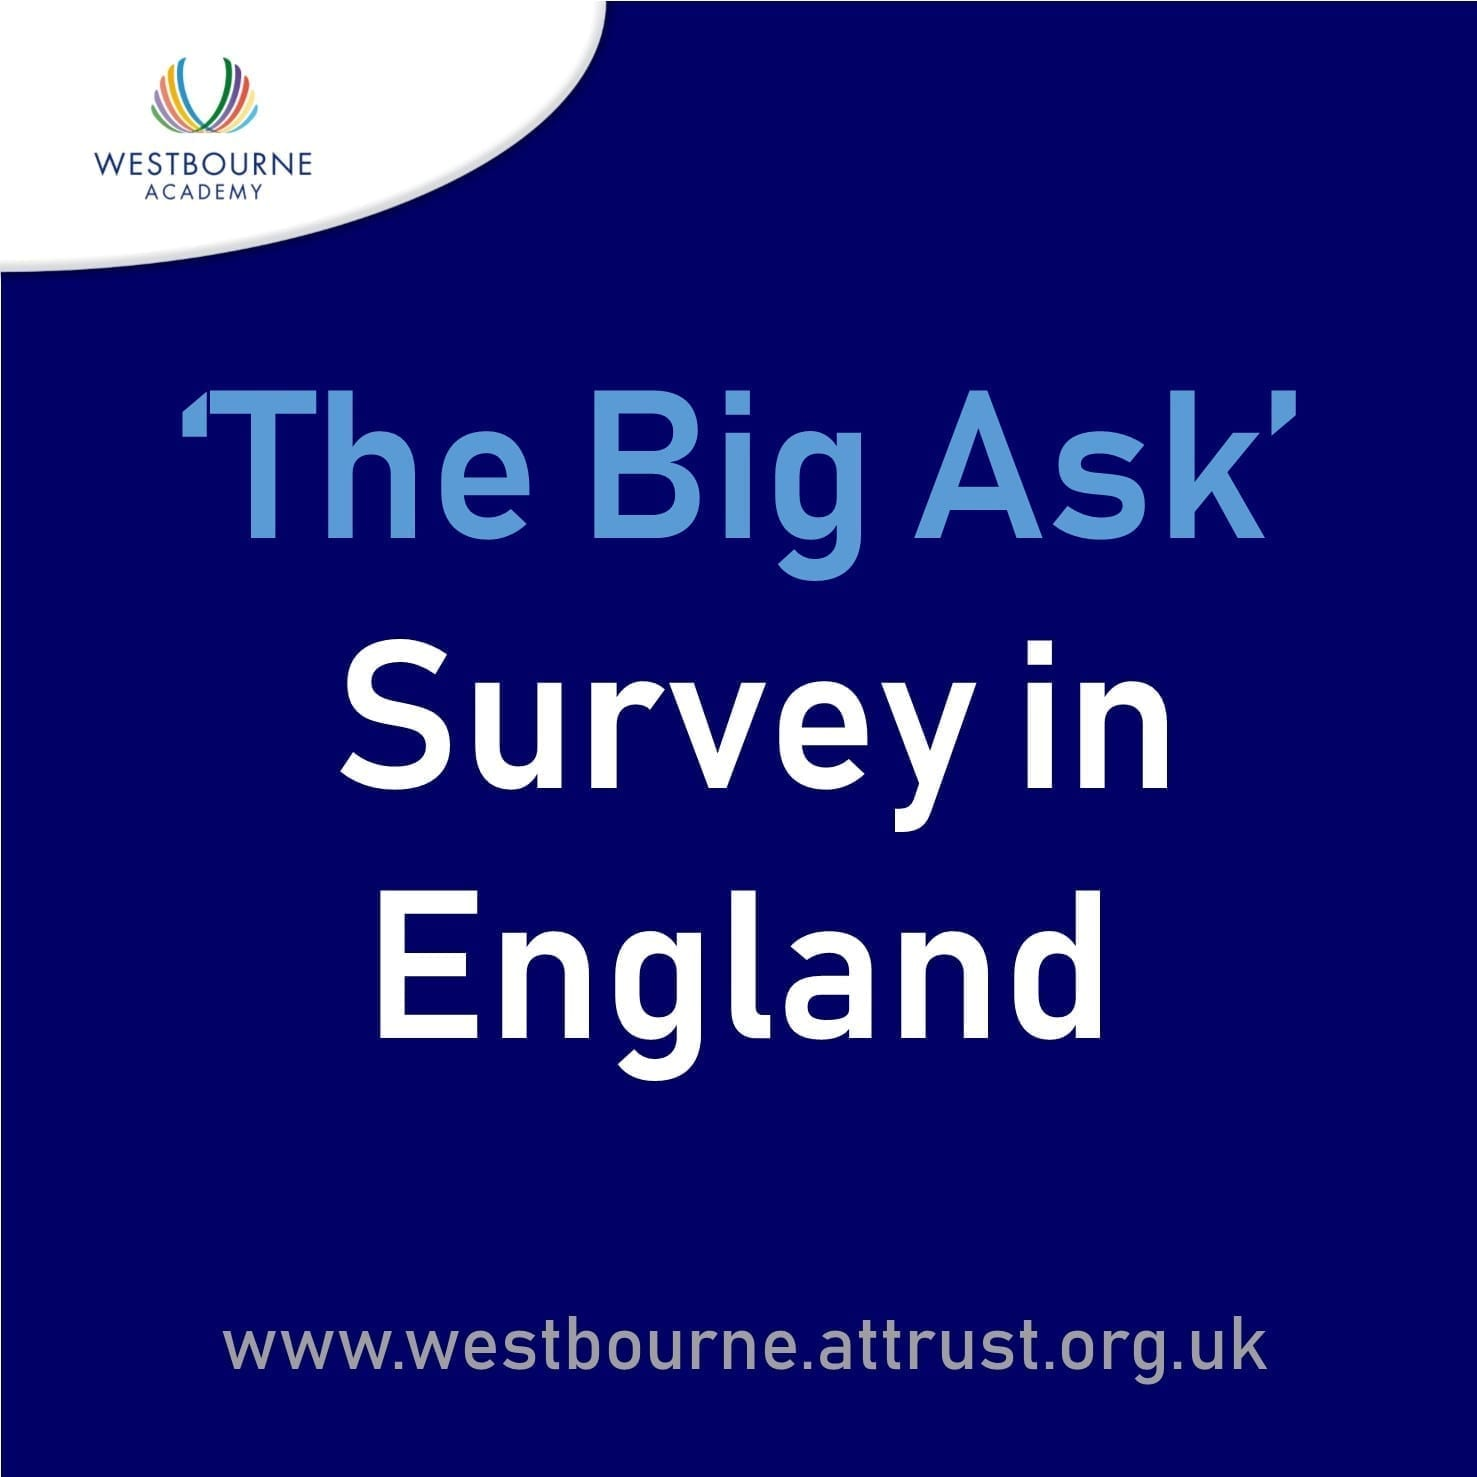 The Big Ask survey in England 7 - 17 year olds